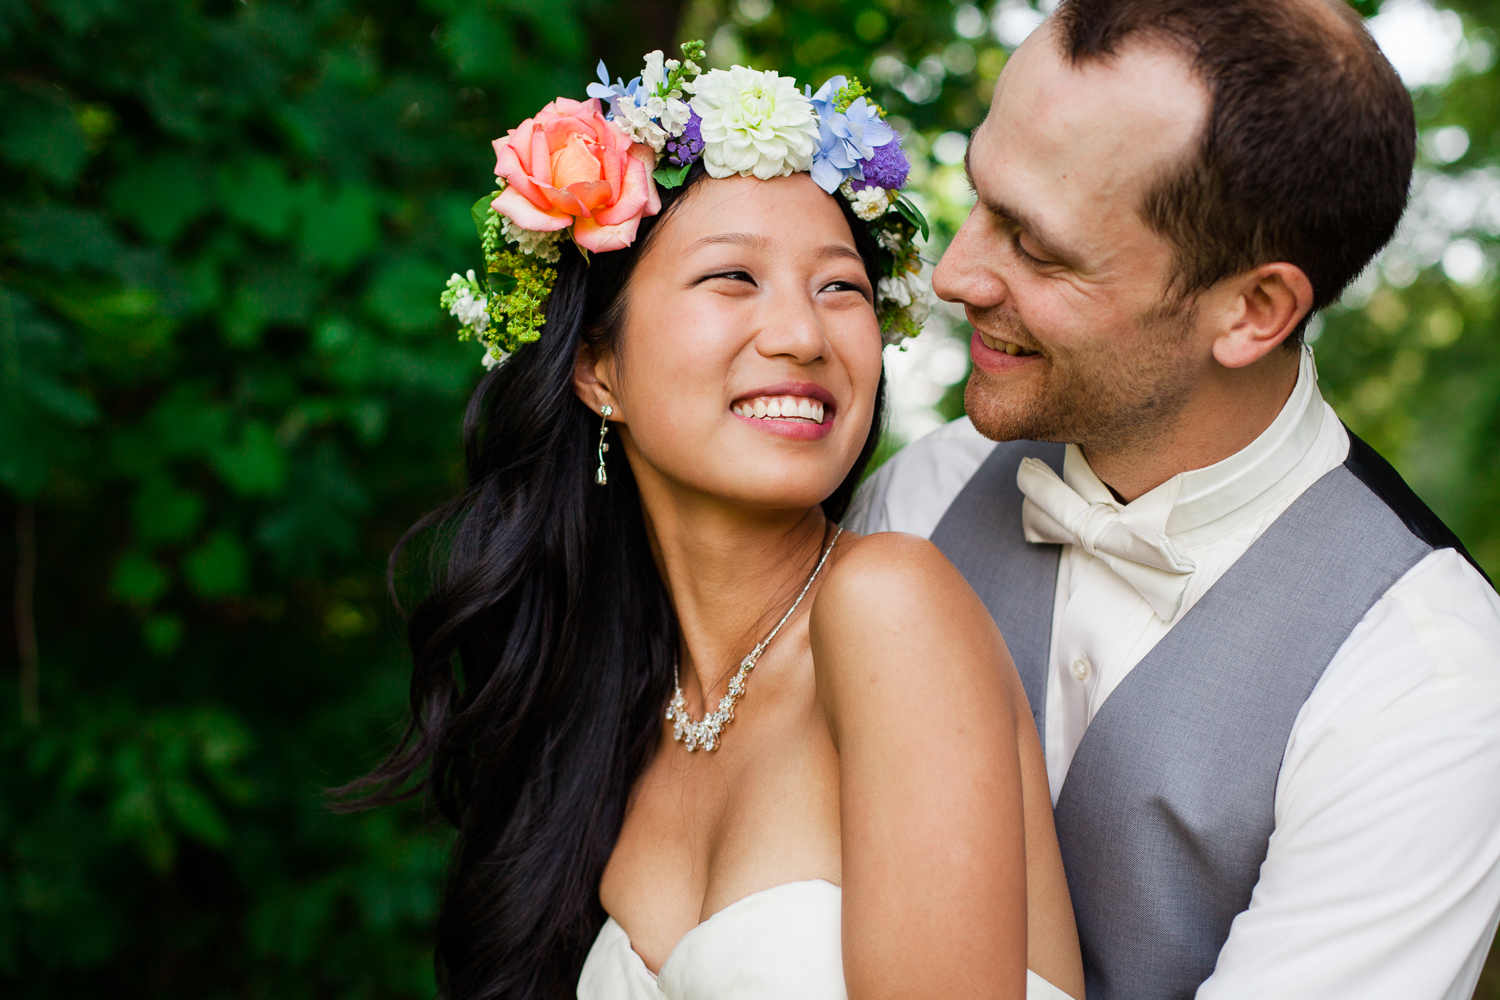 Beautiful bride with flower crown